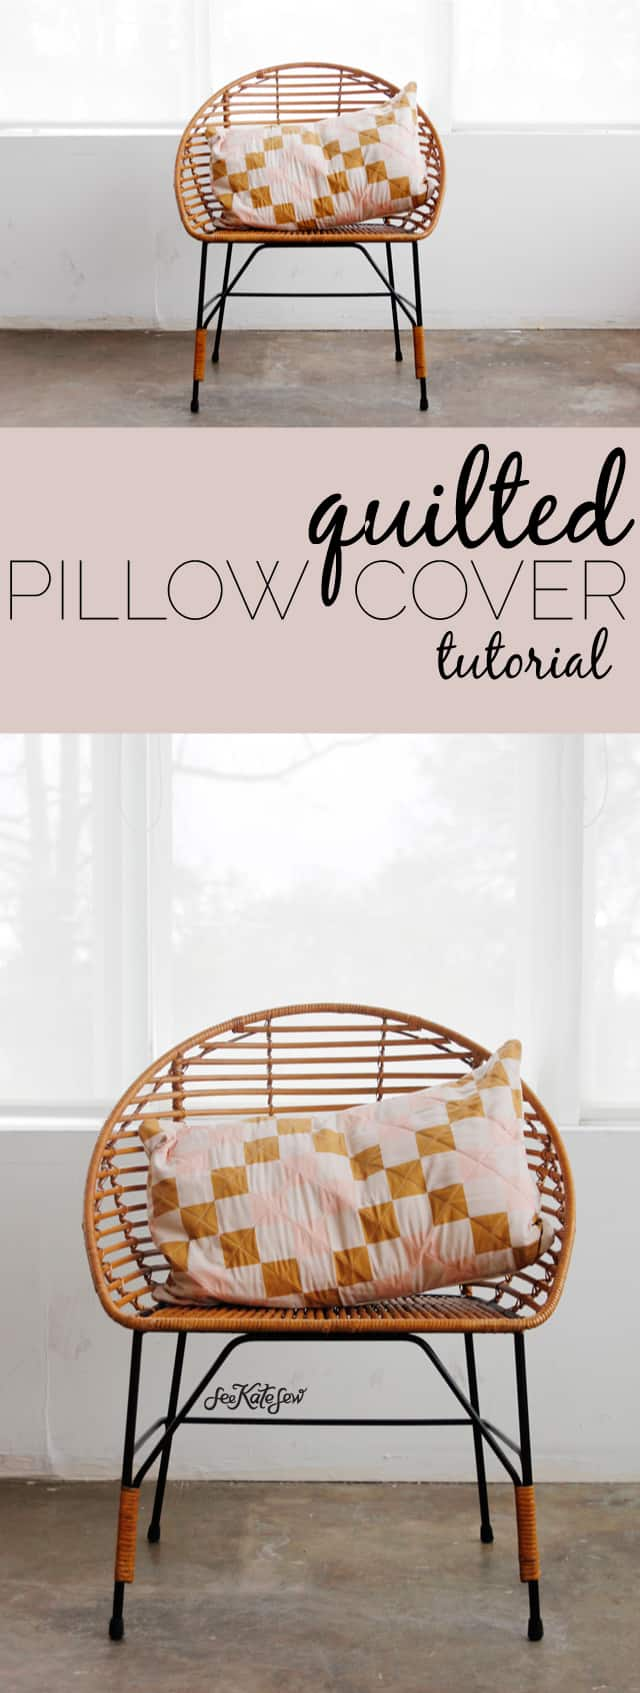 Quilted Pillow Cover Tutorial | See Kate Sew